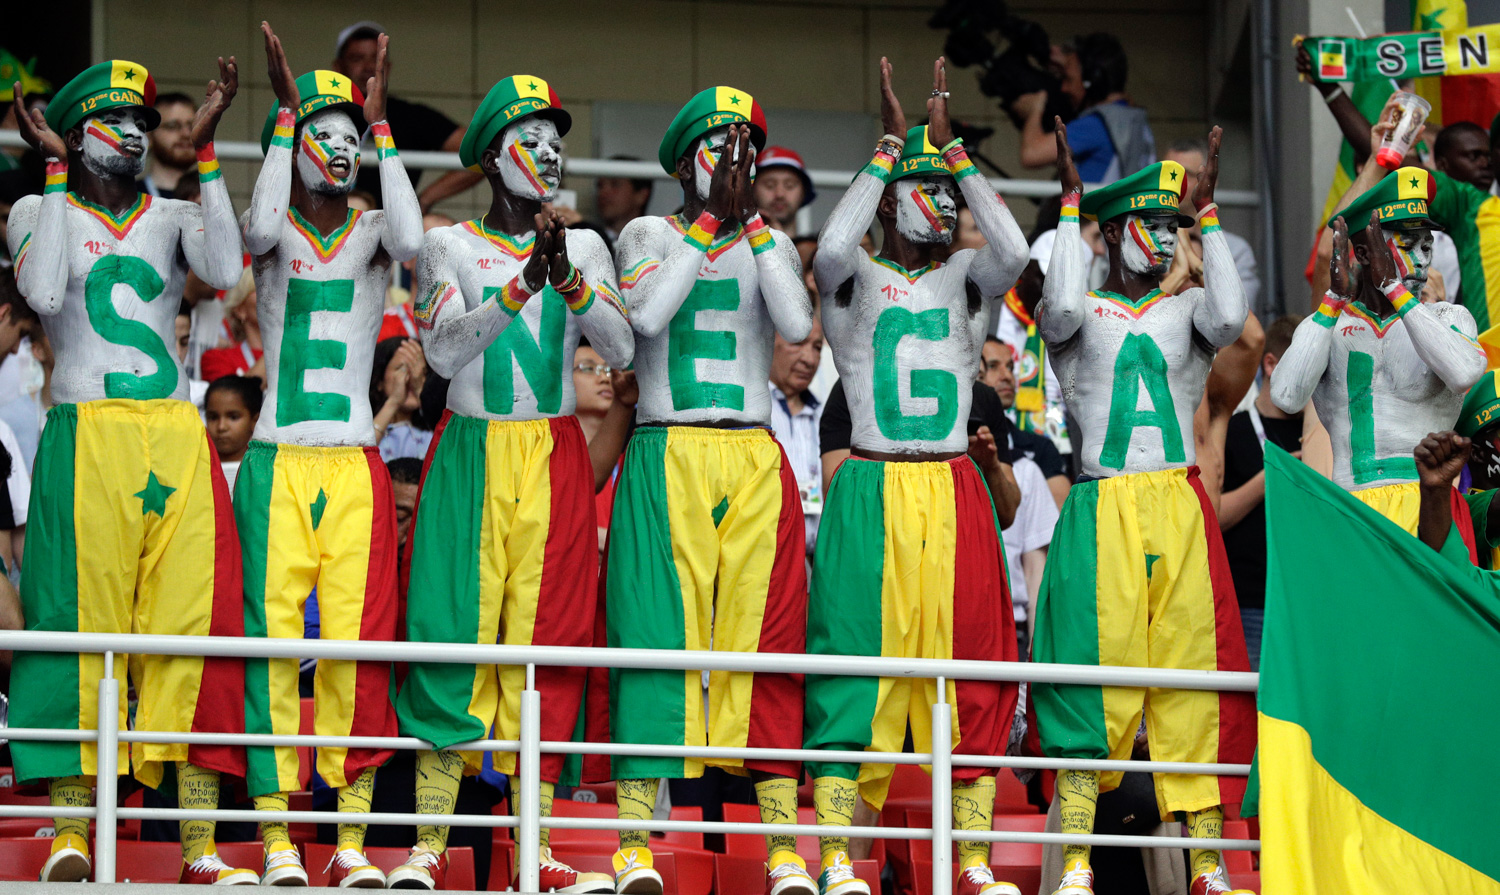 <div class='meta'><div class='origin-logo' data-origin='none'></div><span class='caption-text' data-credit='Andrew Medichini/AP'>Senegal's fans, their bodies and faces painted in the colors of the national flag, support their team during the group H match between Poland and Senegal</span></div>